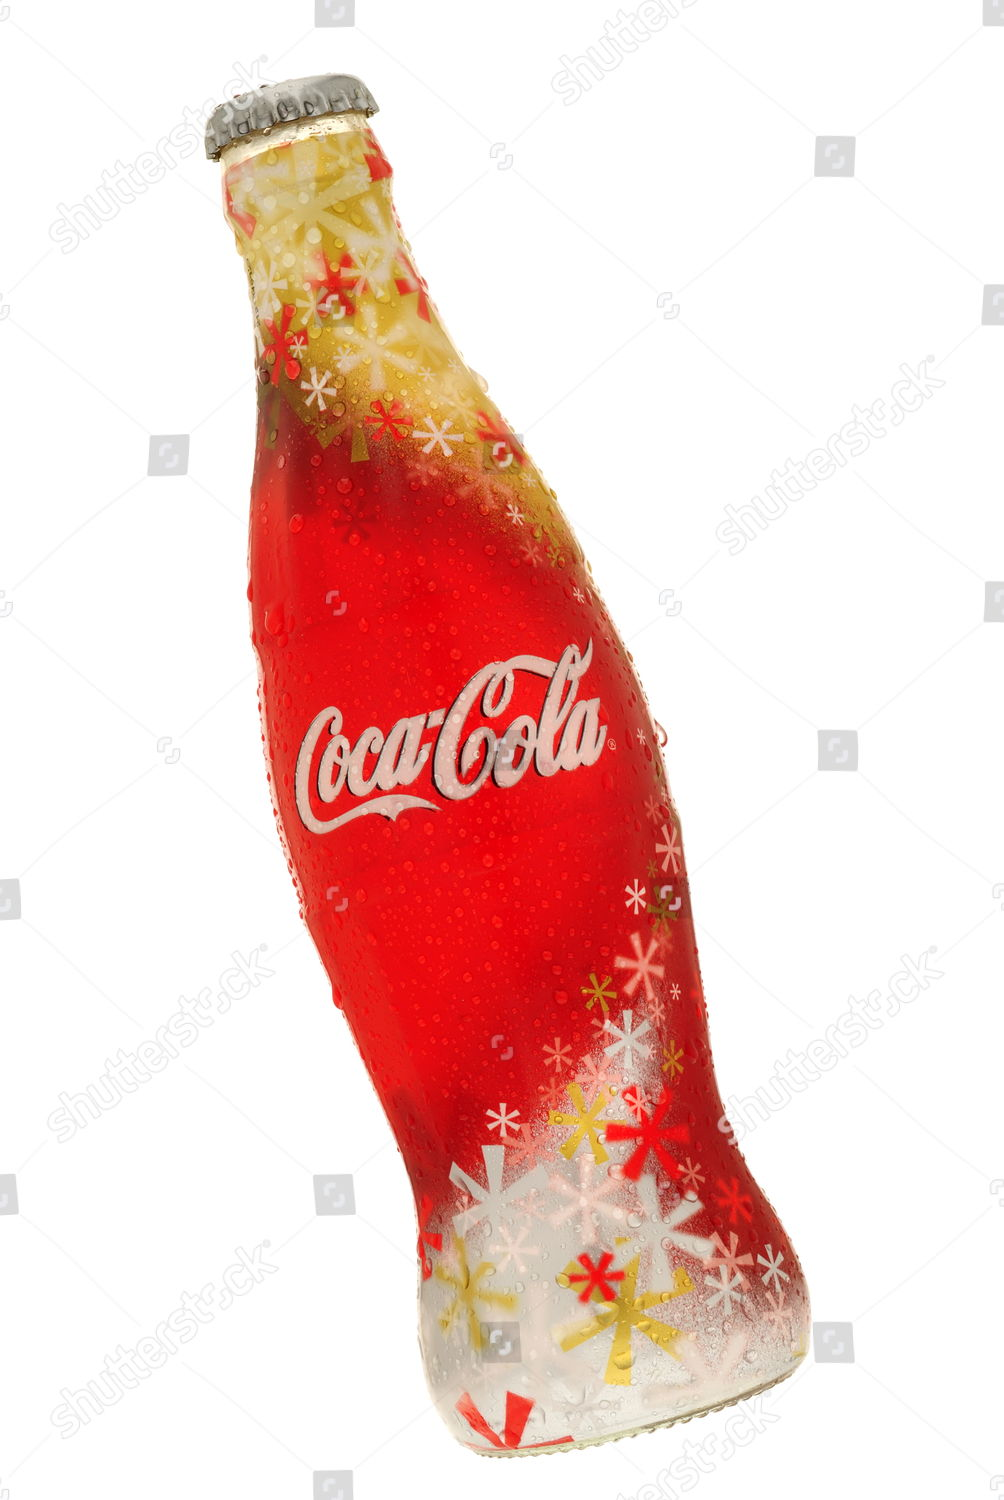 Coca Cola Christmas Bottle.Coca Cola Limited Edtion Christmas Bottle Editorial Stock